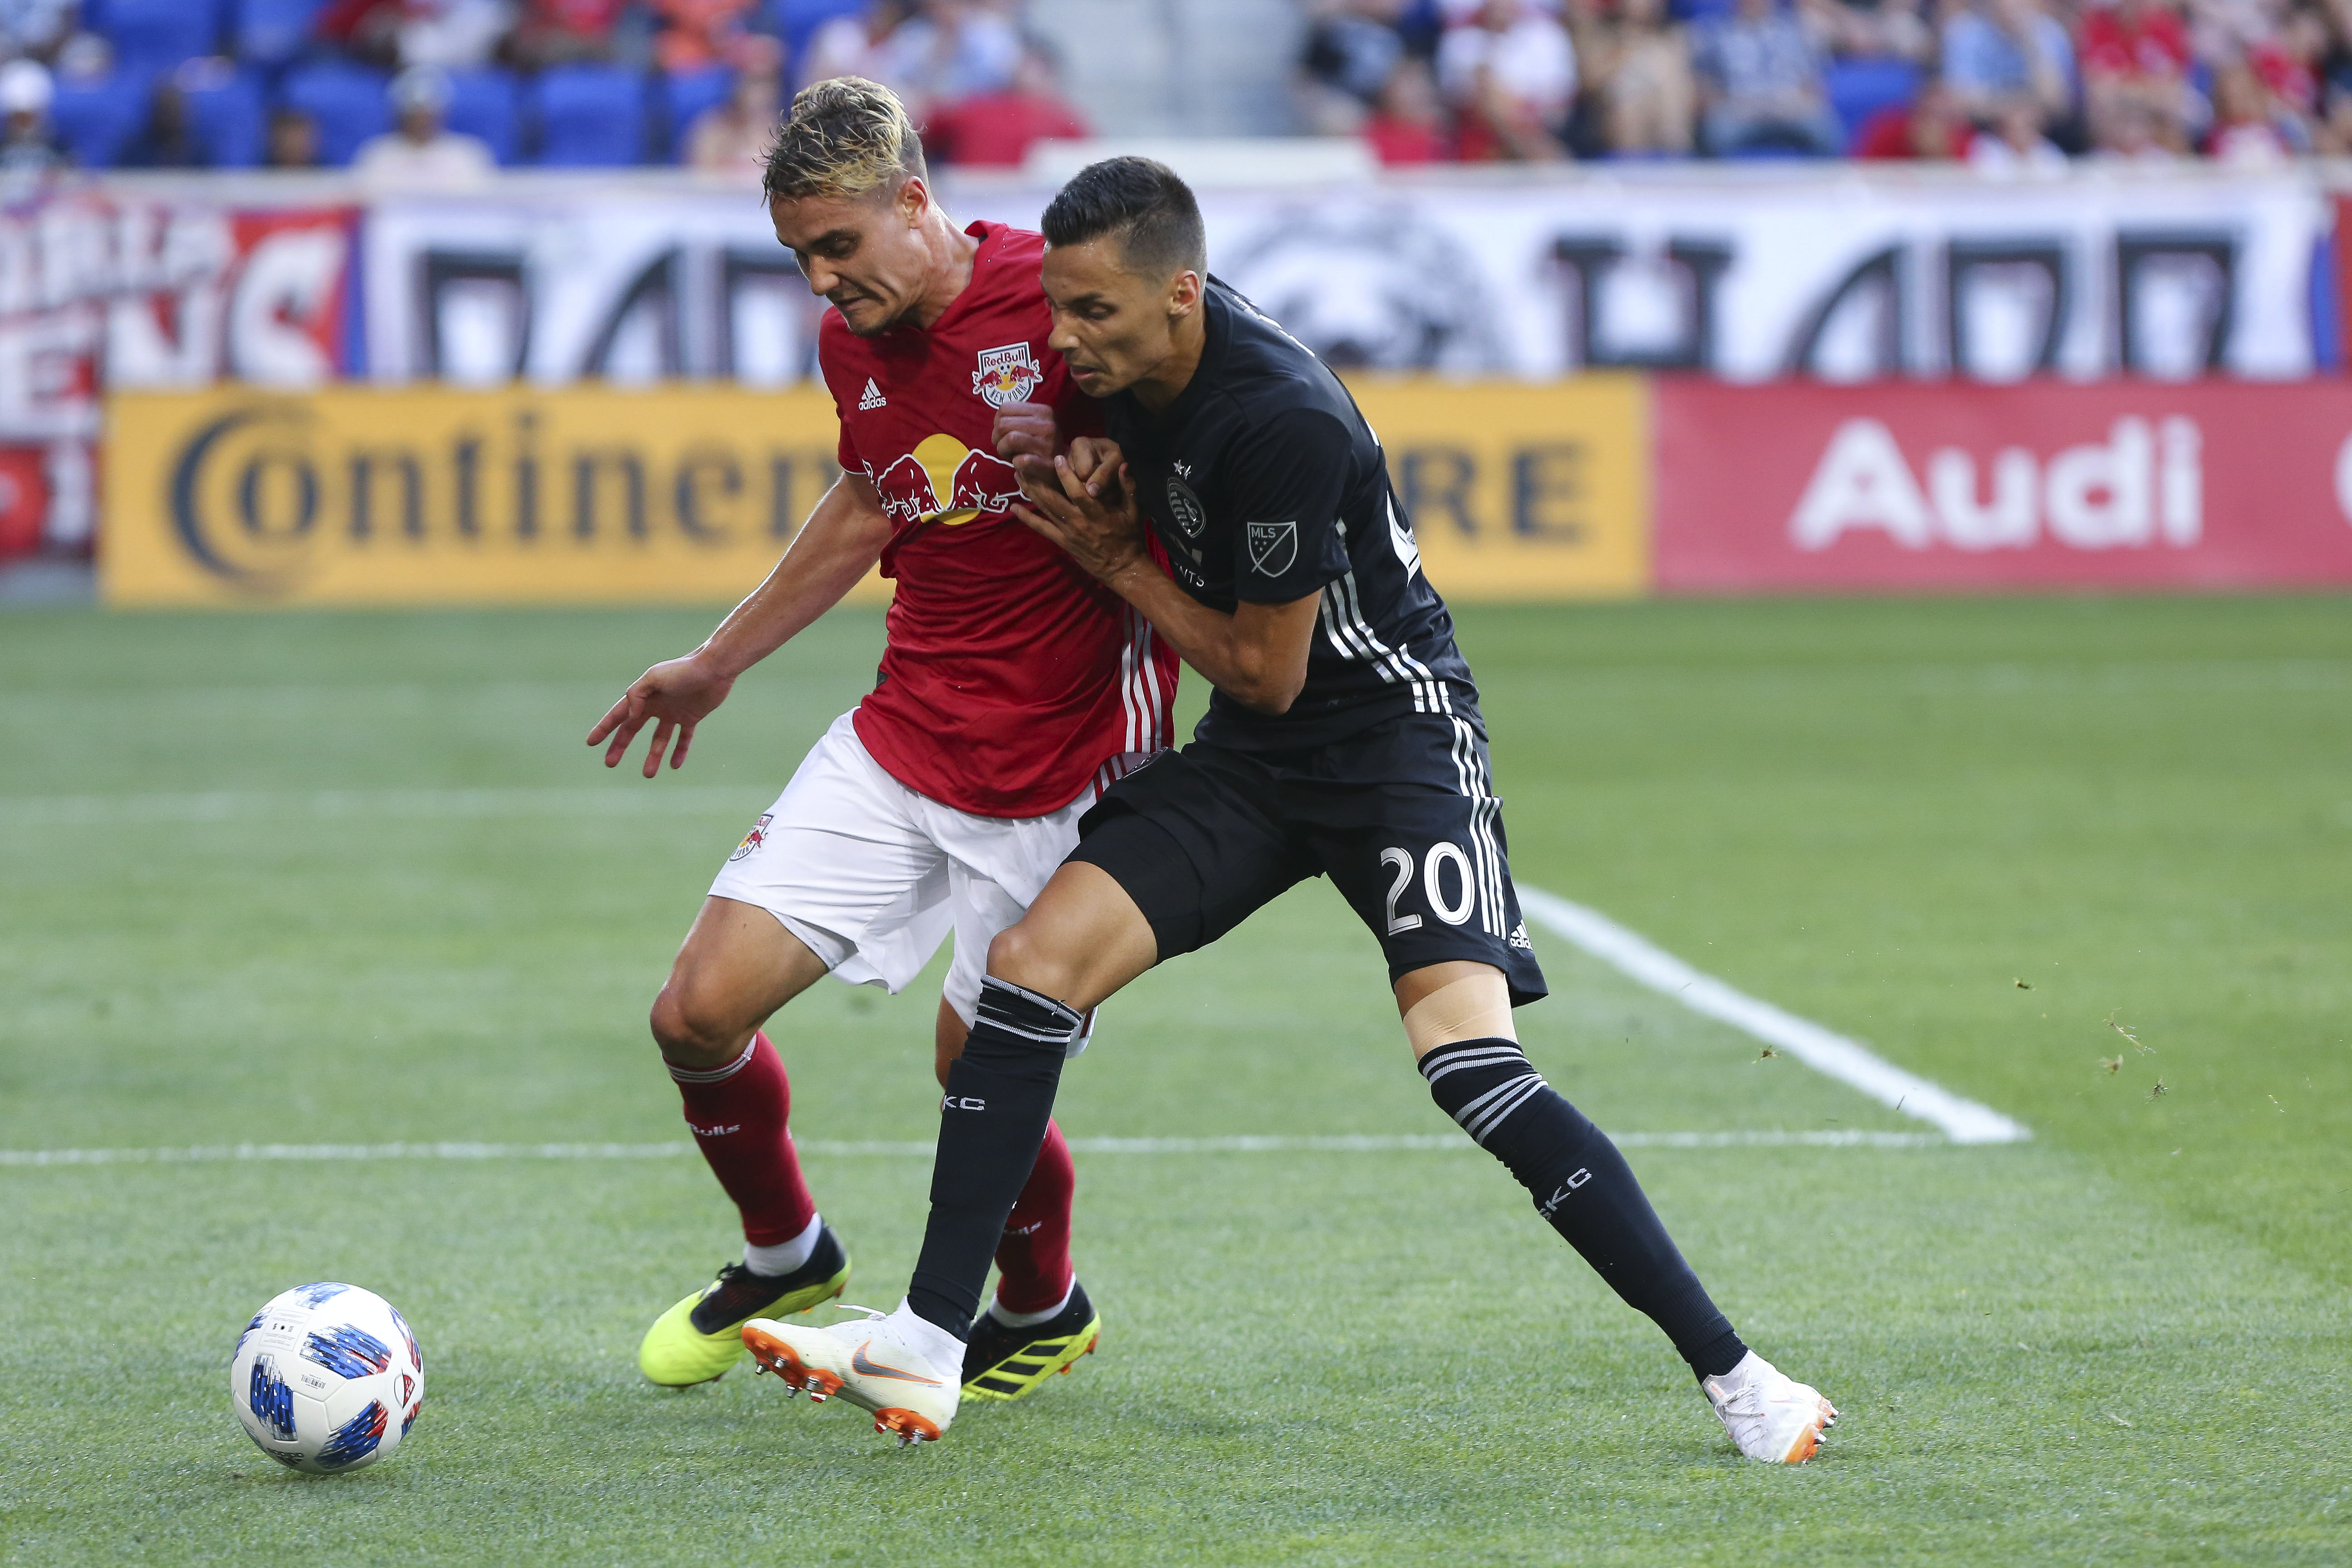 Sporting KC v New York Red Bulls: Preview and How to Watch and